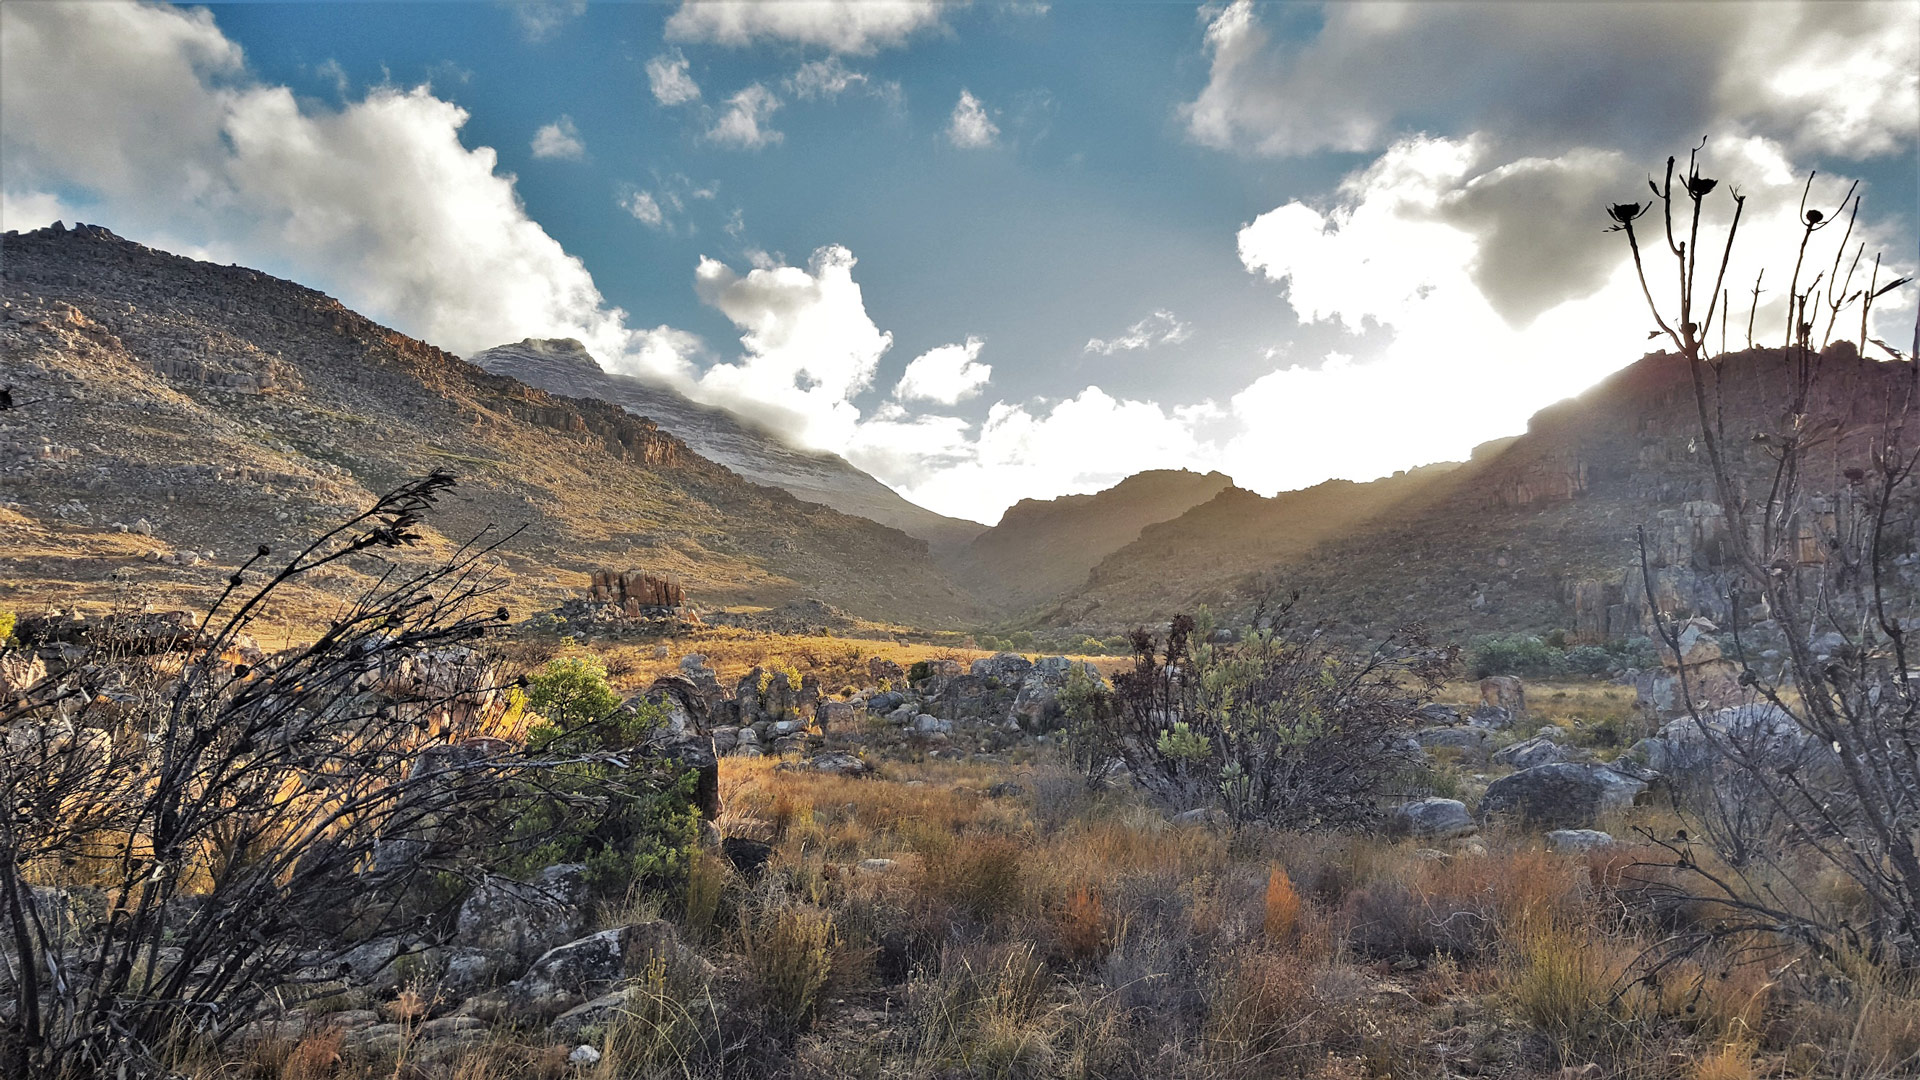 A fantastic view from the Maltese Cross parking area in the Cederberg